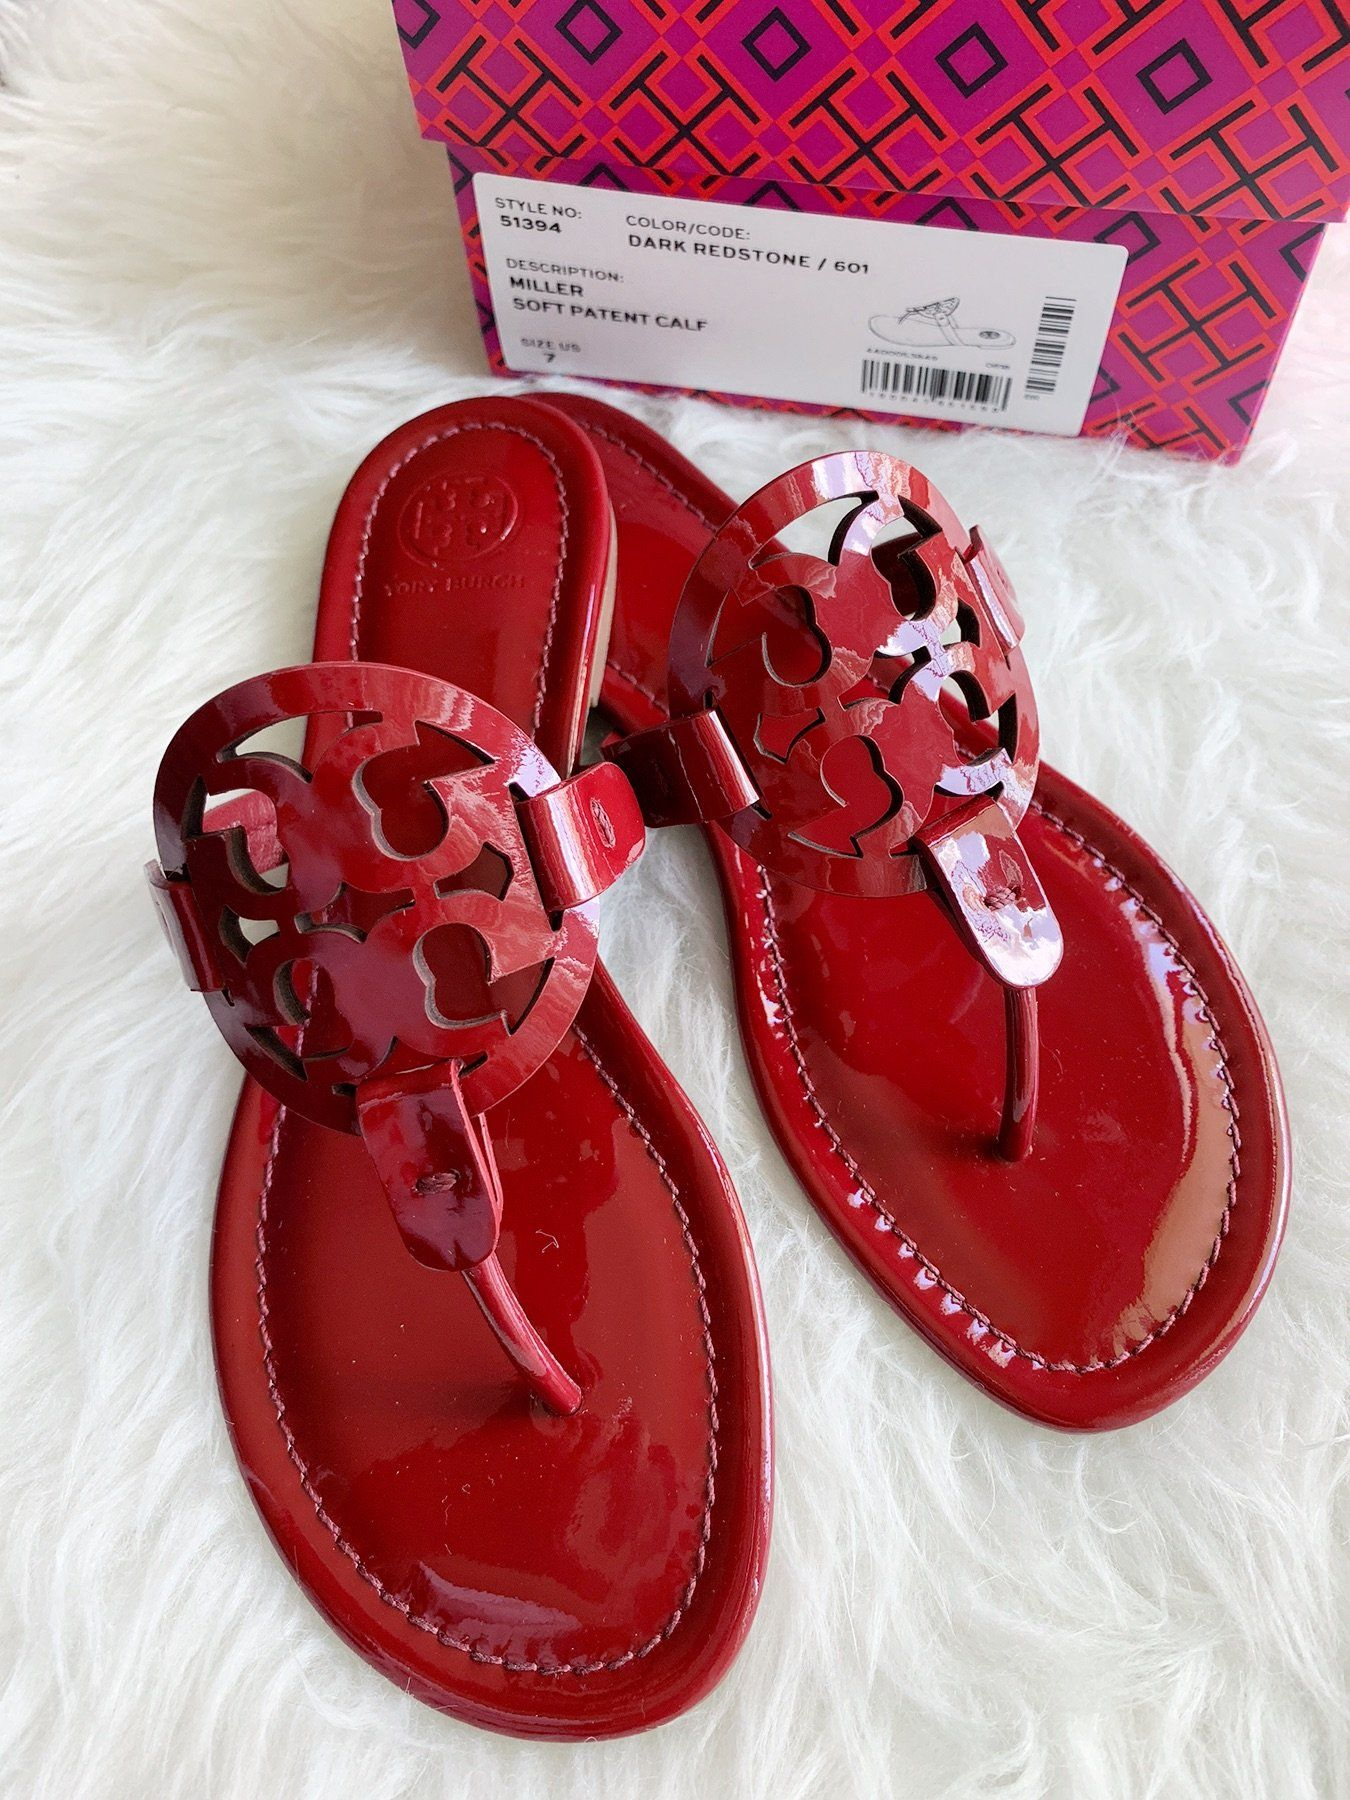 b492d3f6c2d4 Tory Burch Miller Sandals Flip Flop Dark Red Stone 7  ebayseller   tradesyseller  rated  ebaycommunity  toprated  ebayfashion  Handbags   poshpackages ...